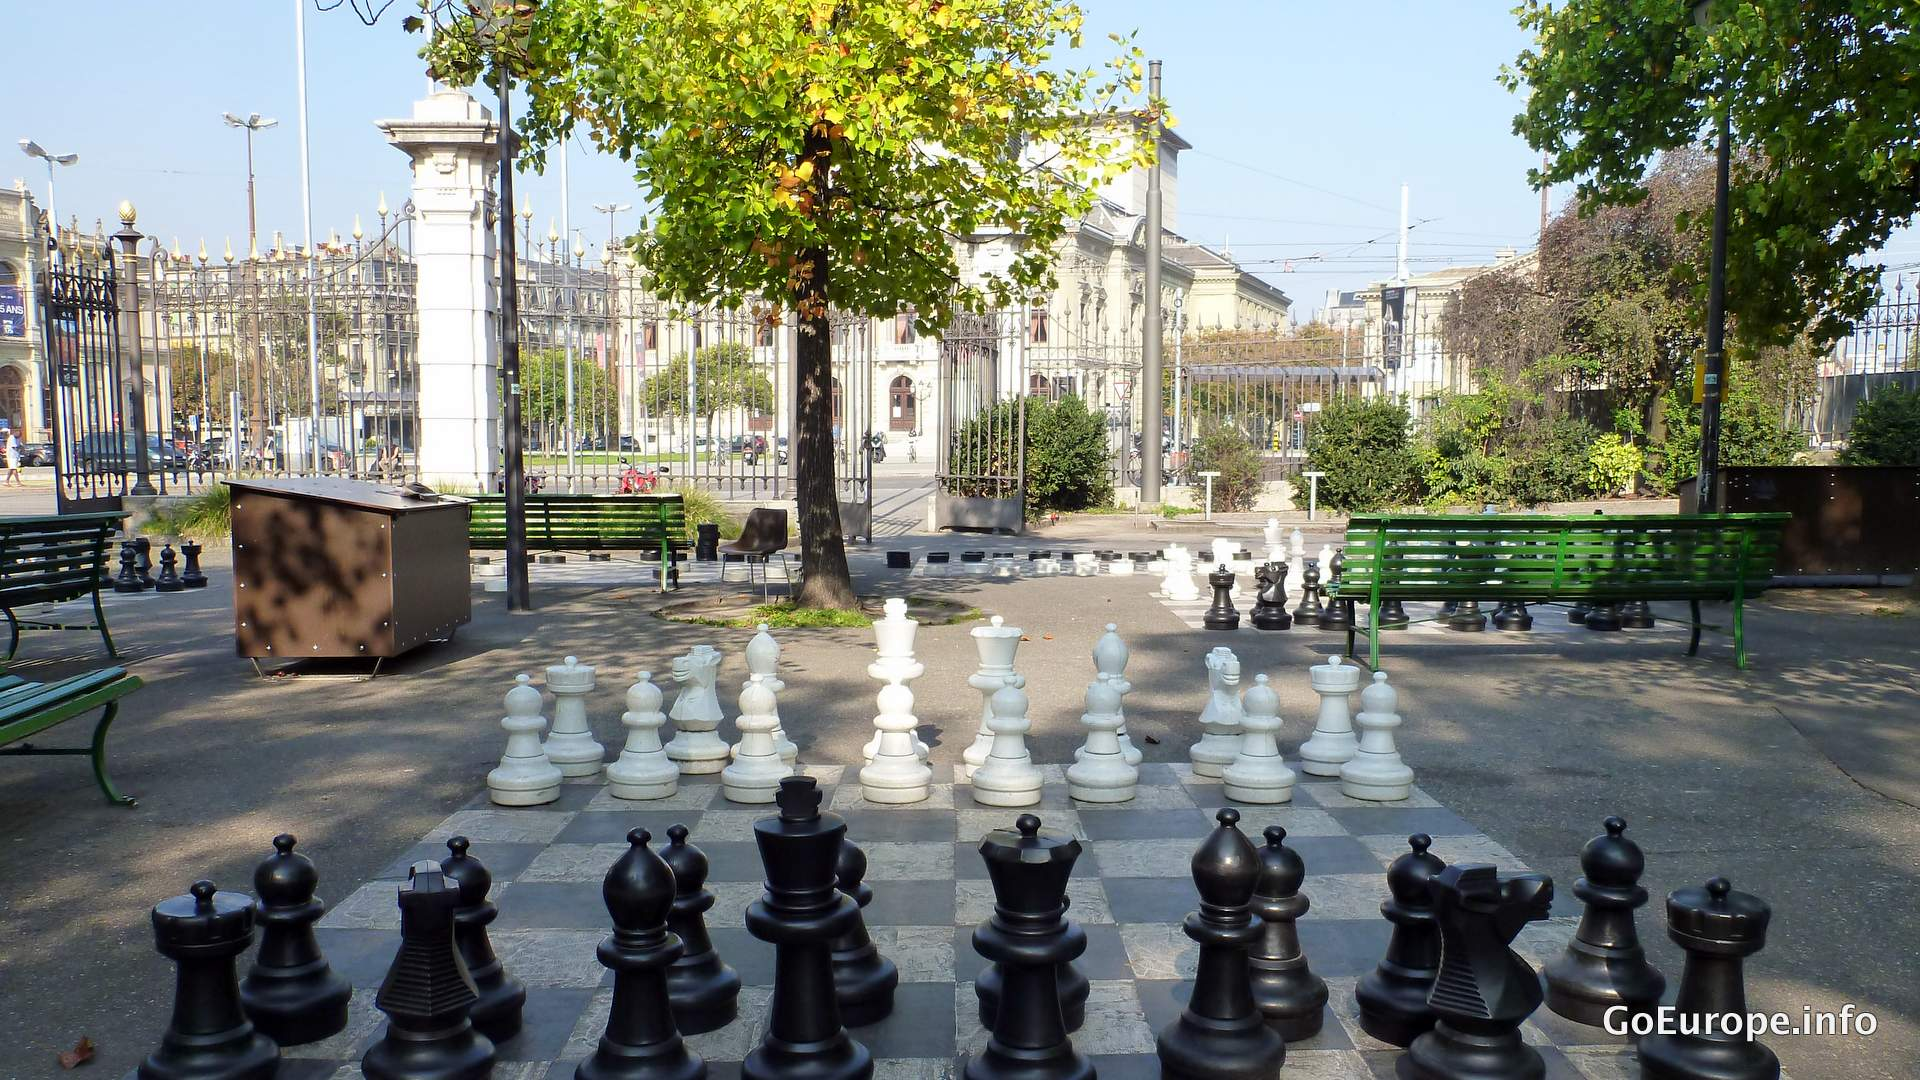 Finish off with playing some chess in the park.